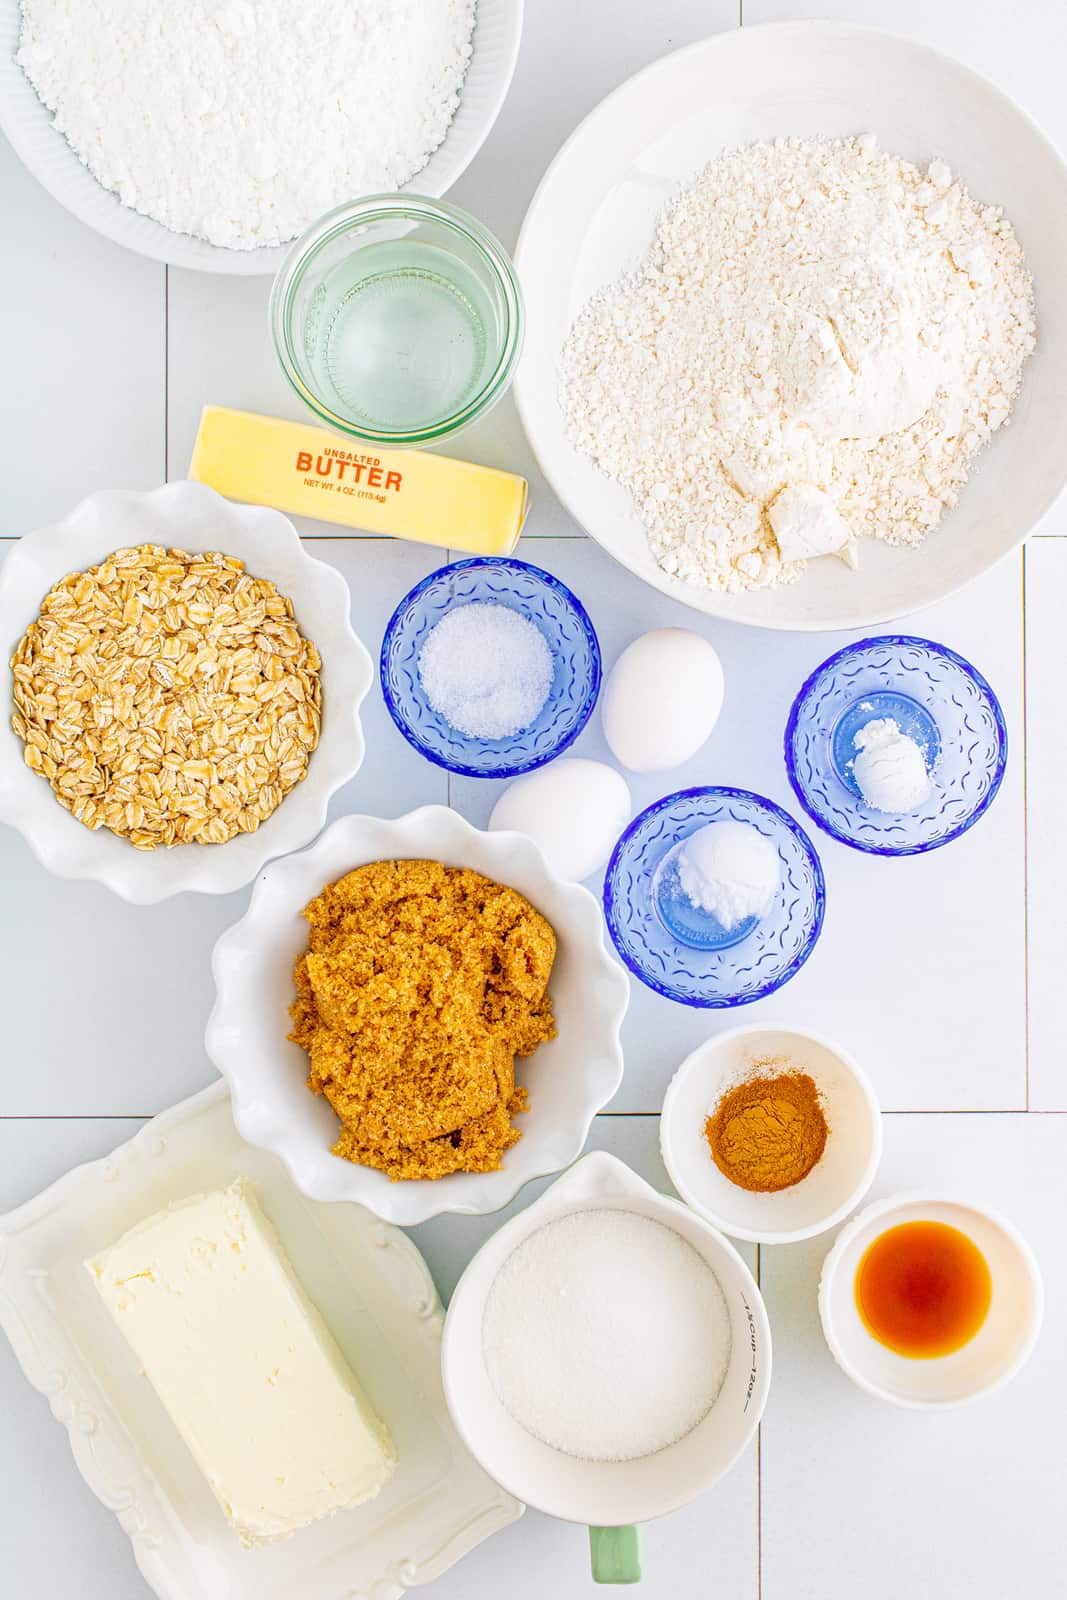 Ingredients needed to make Old-Fashioned Oatmeal Cake